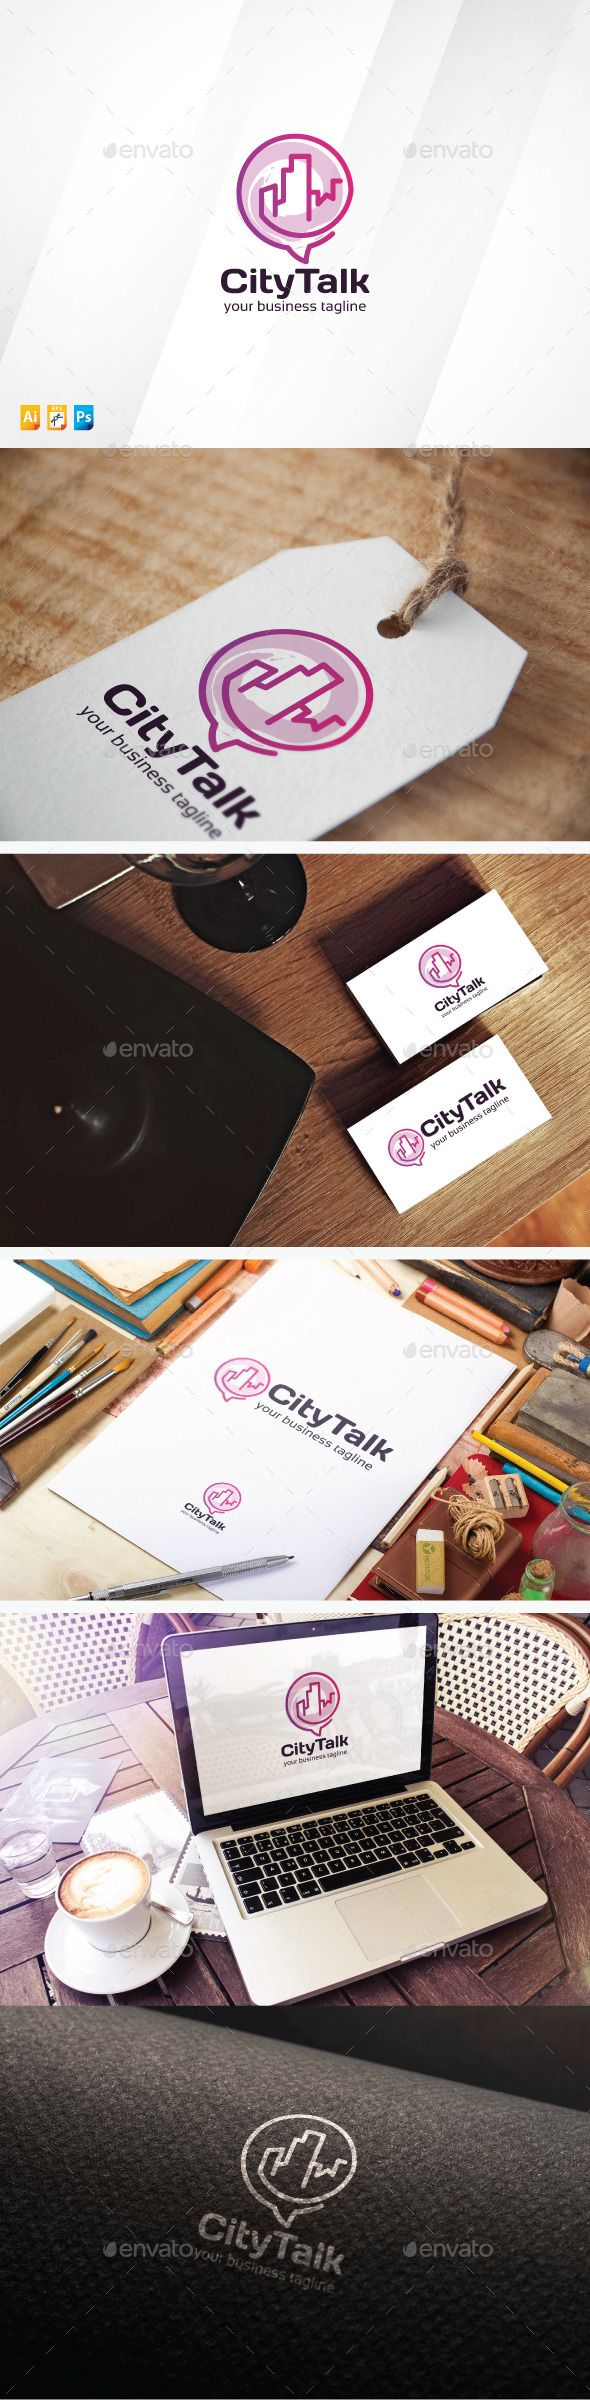 City Talk Logo Template #design #logotype Download: http://graphicriver.net/item/city-talk/13826255?ref=ksioks